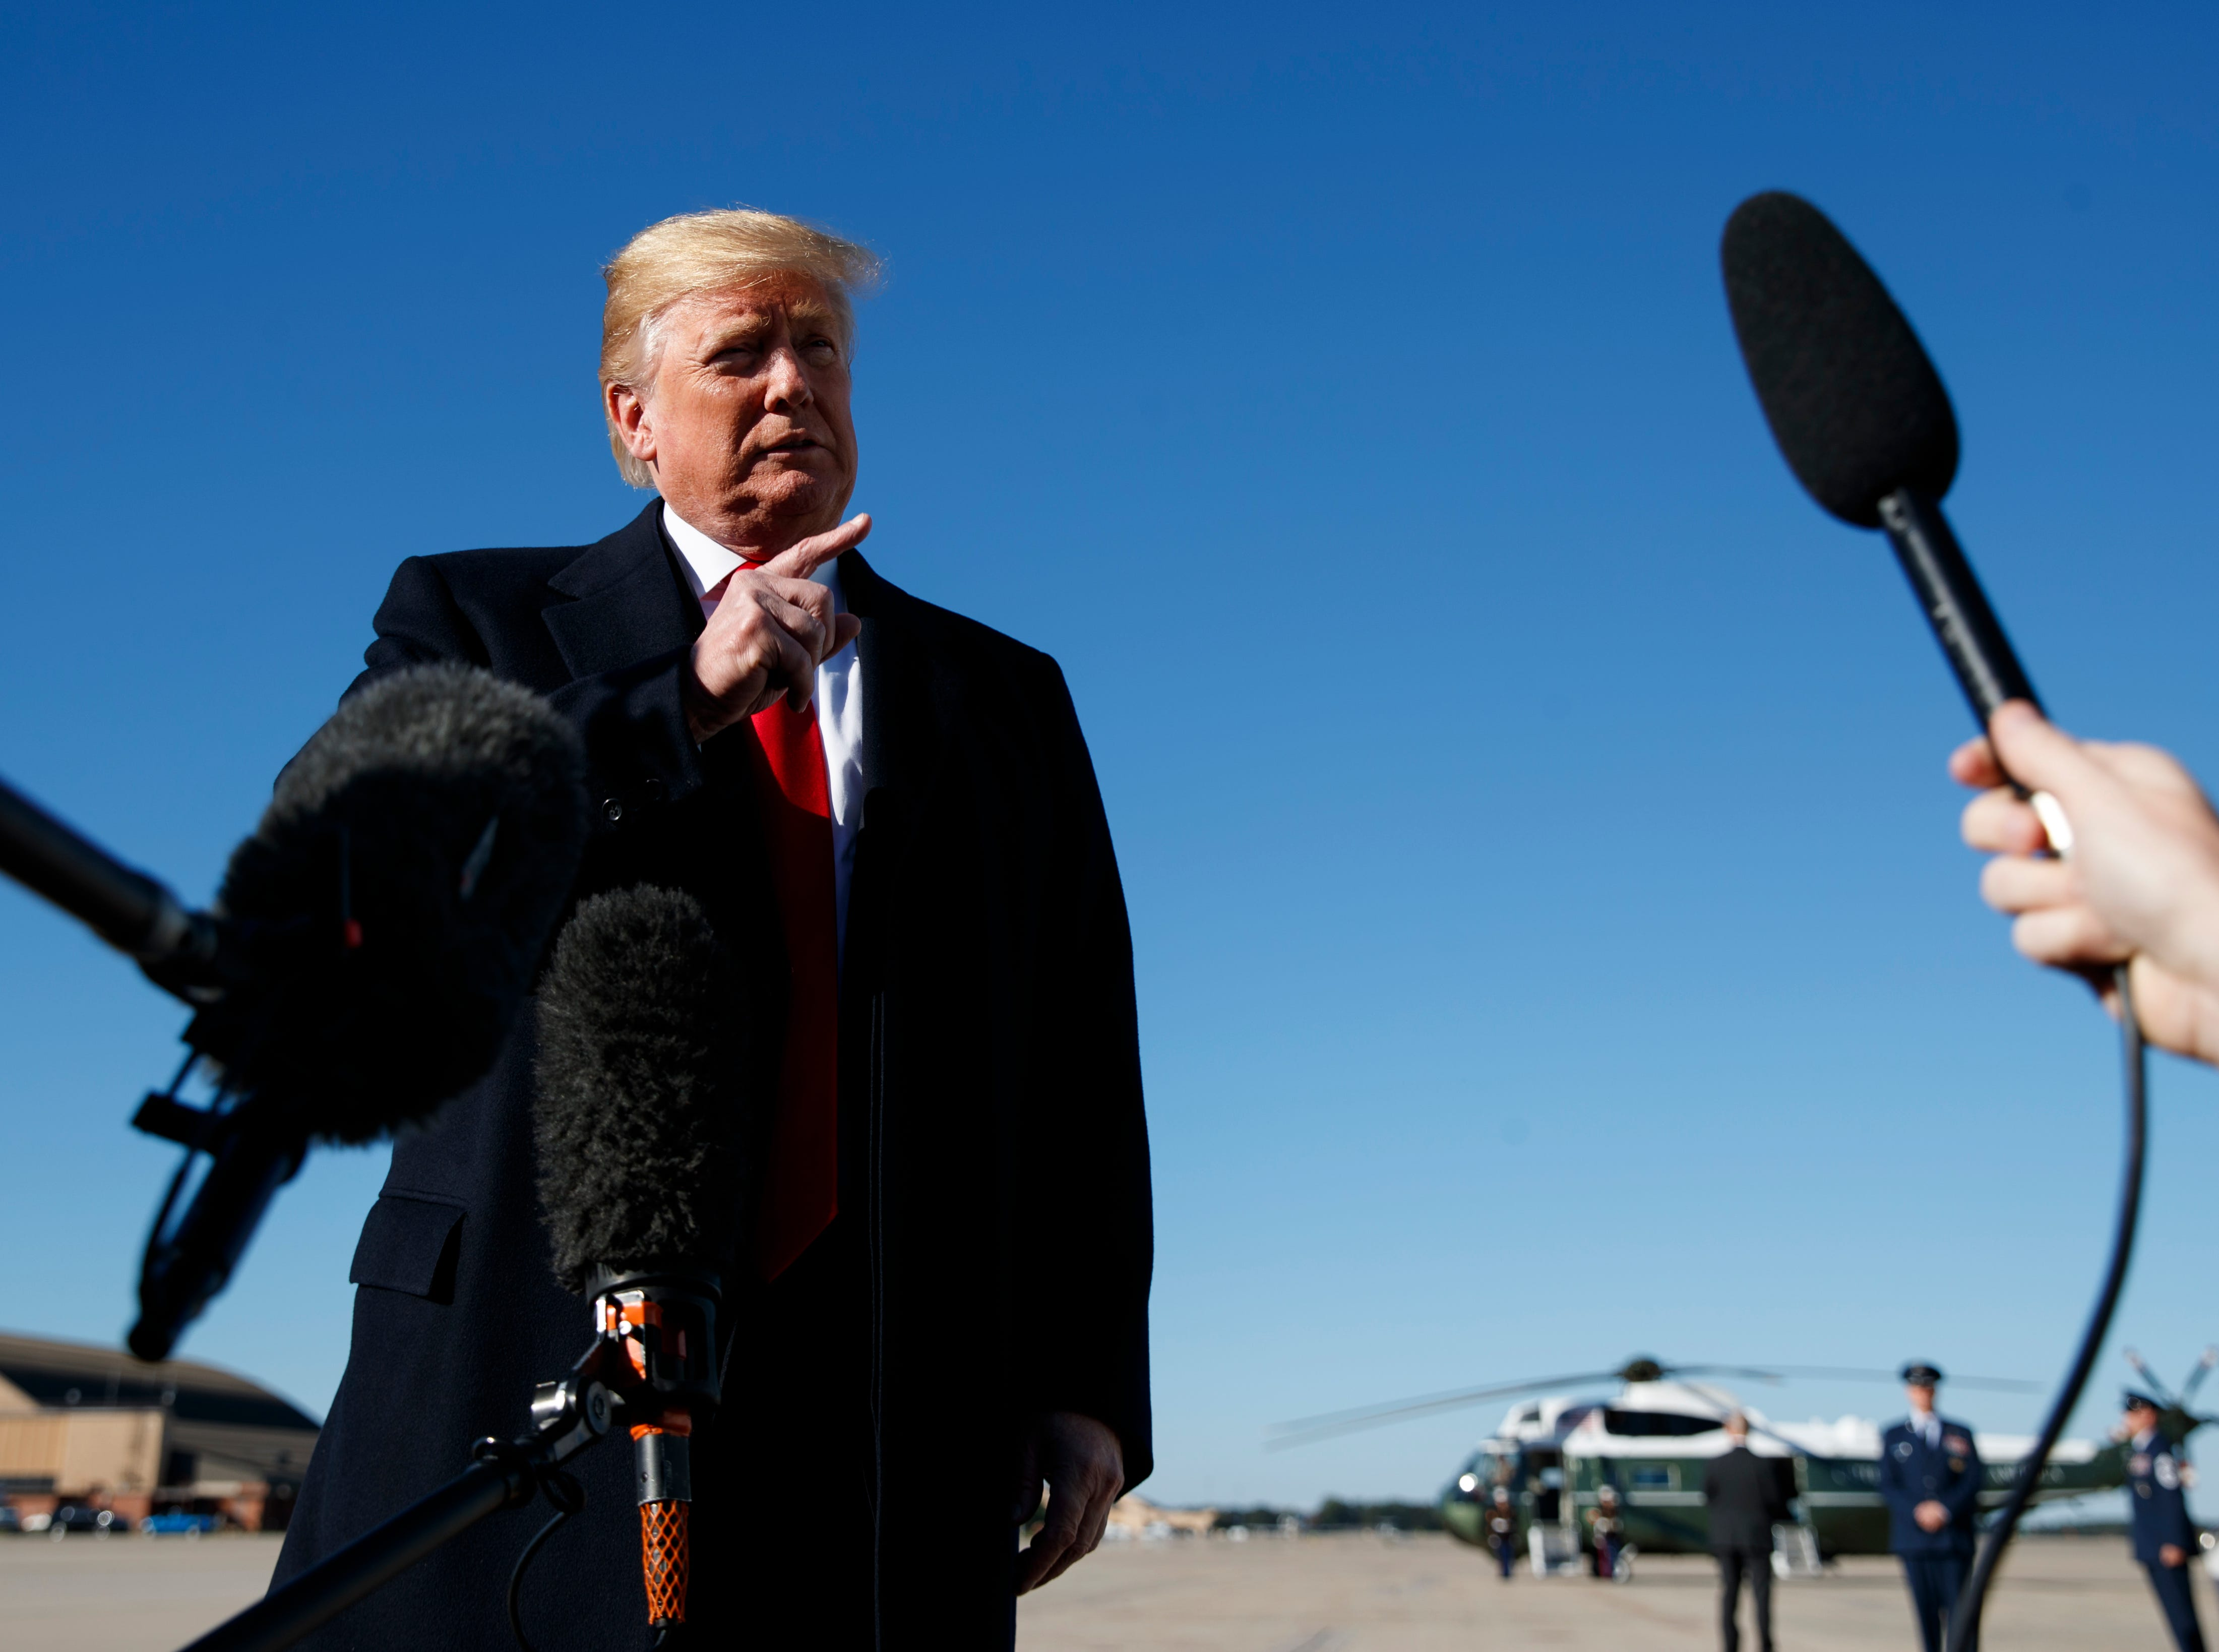 President Donald Trump talks to reporters Oct. 18, 2018, before boarding Air Force One in Andrews Air Force Base, Maryland, en route to campaign stops in Arizona, Montana and Nevada.